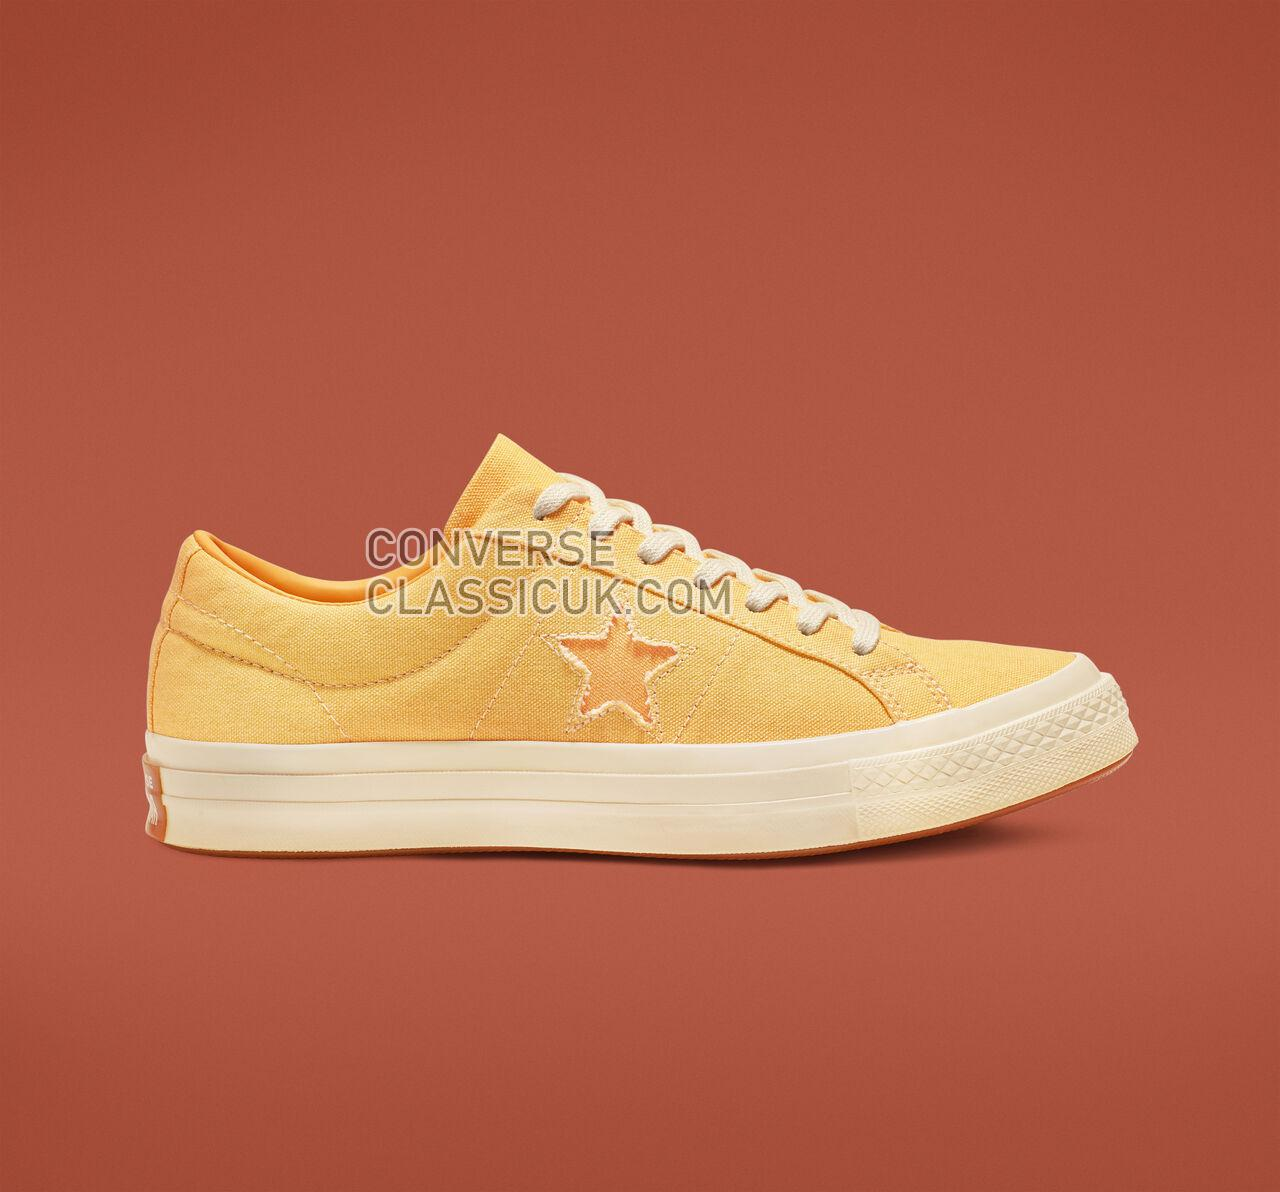 Converse One Star Sunbaked Mens Womens Unisex 164358C Butter Yellow/Melon Baller Shoes